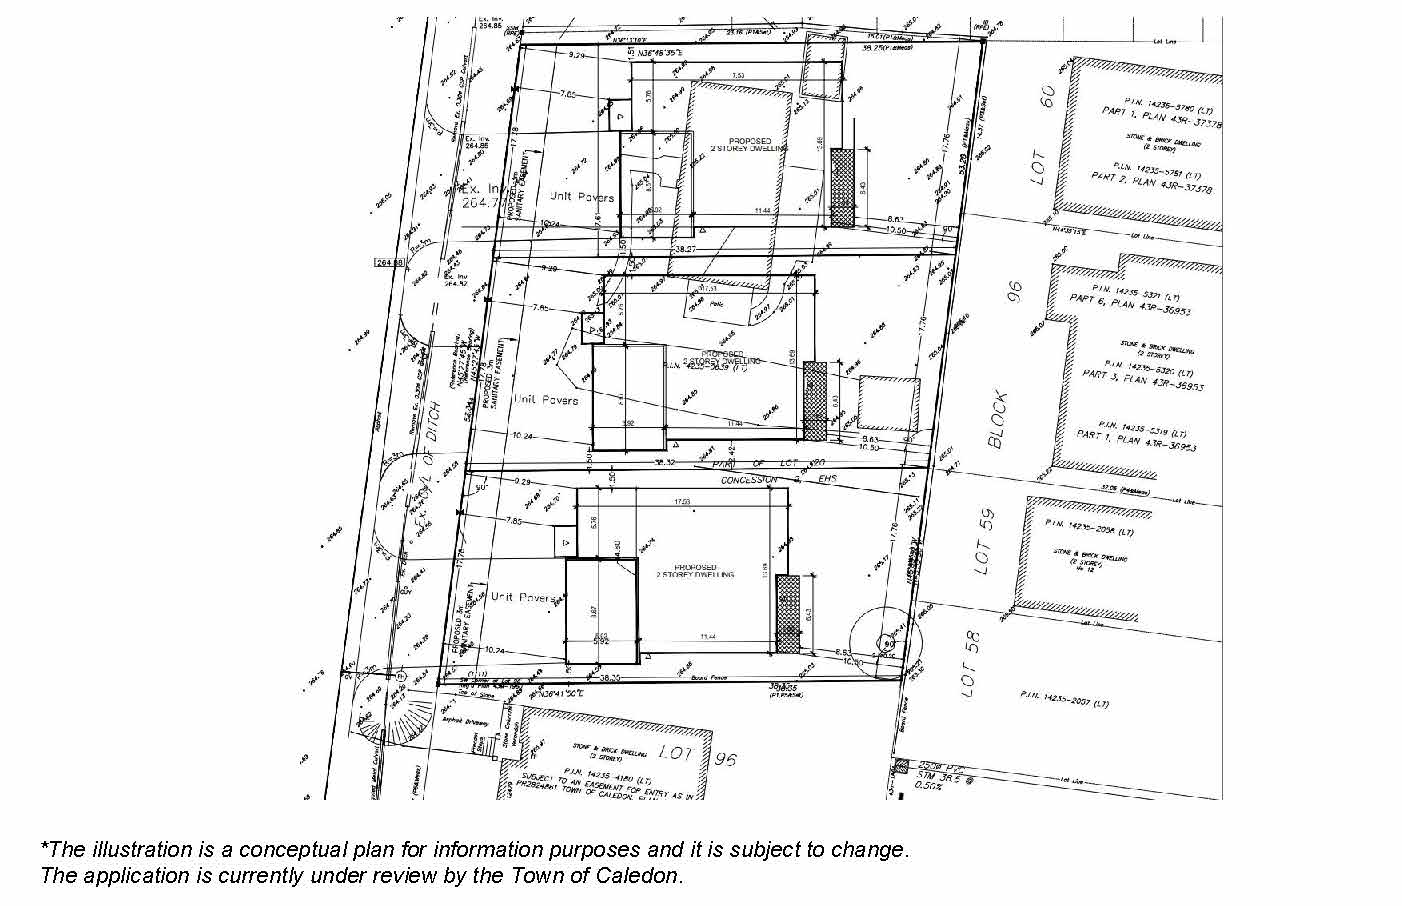 Site plan for 12507 Old Kennedy Road